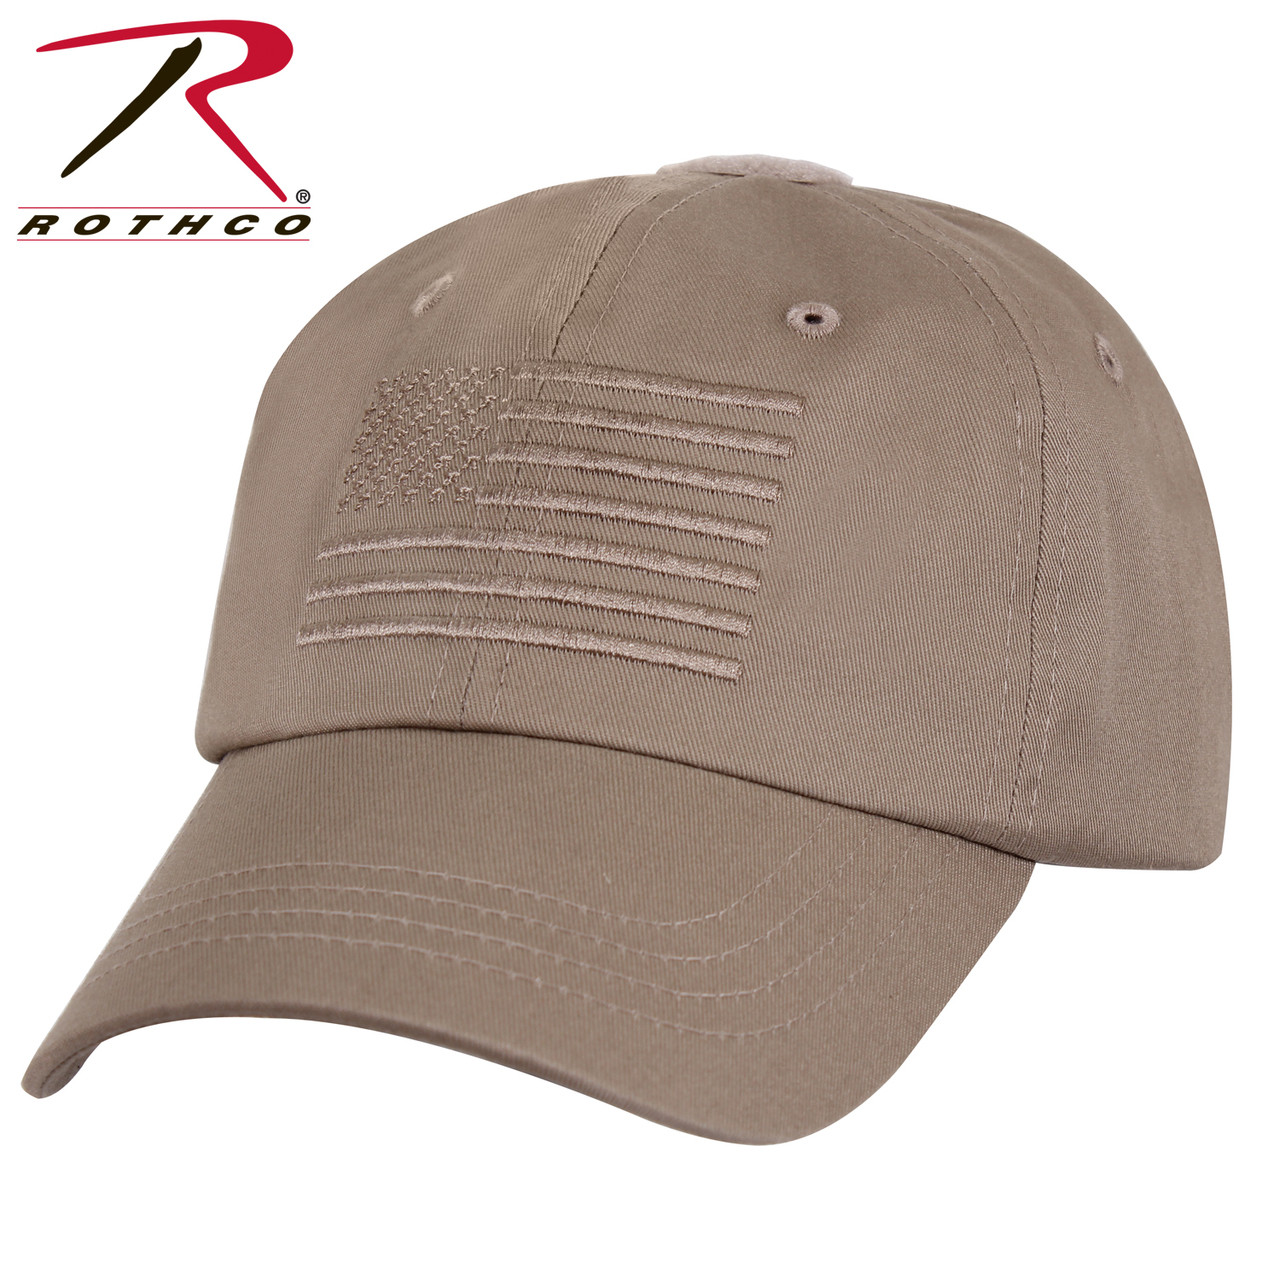 c0a517c065d Rothco Tactical Operator Cap With US Flag - Khaki - Hero Outdoors